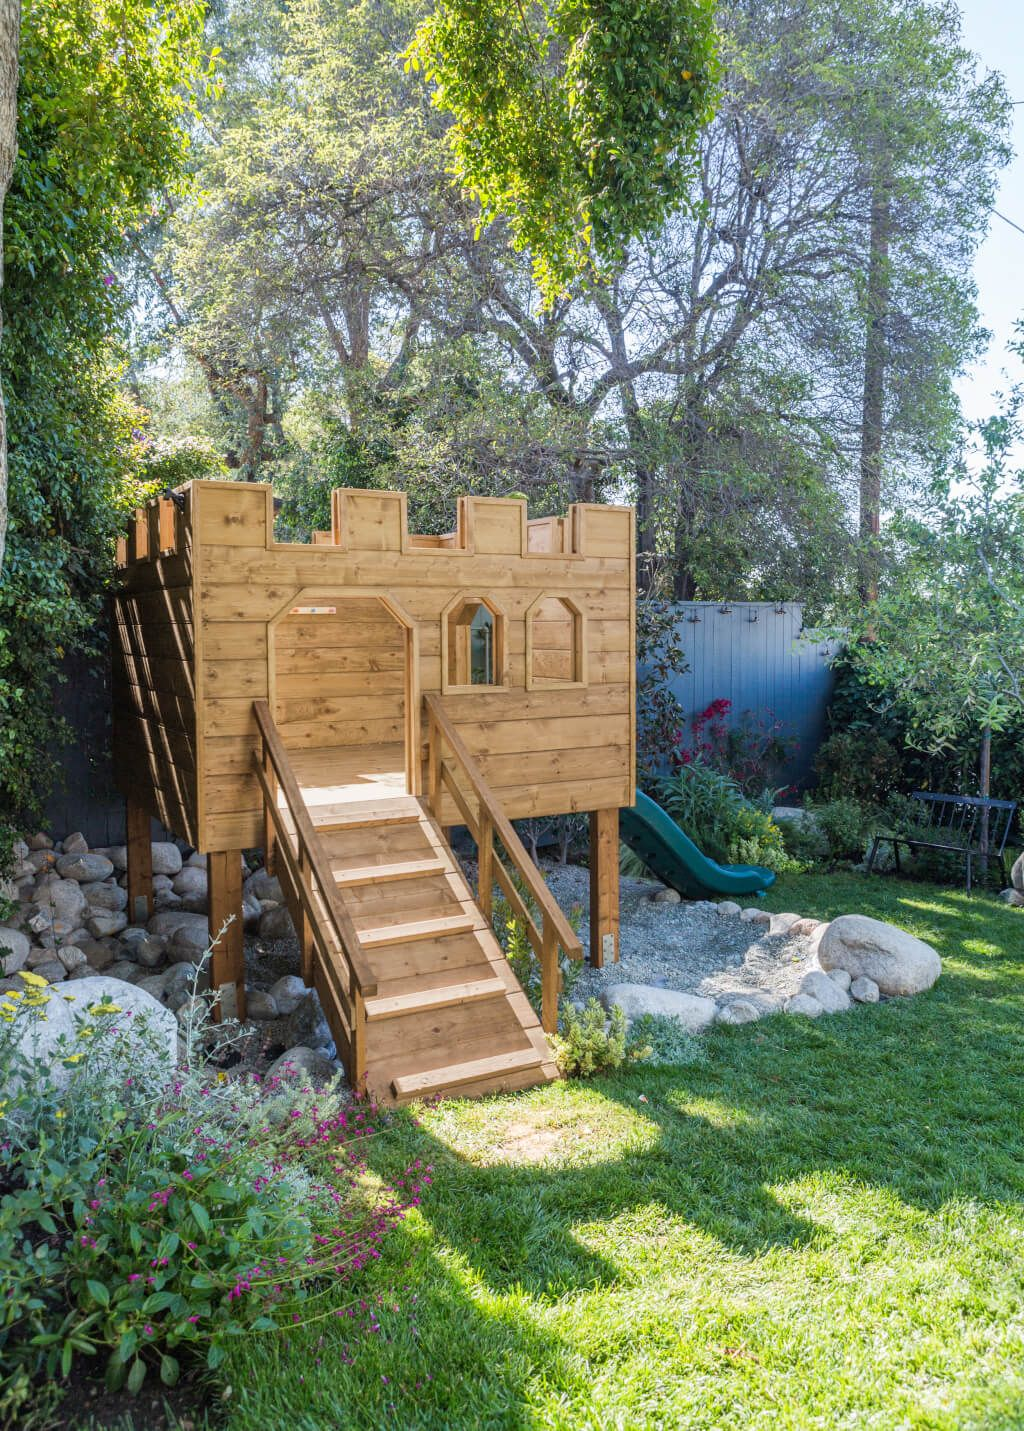 Building Our Backyard Castle with Wood Naturally + Fort ... on back yard railroad engines, back yard clubhouse blueprints, back yard playgrounds toy, back yard rubber mulch, back yard castles for boys, back yard gym plans,